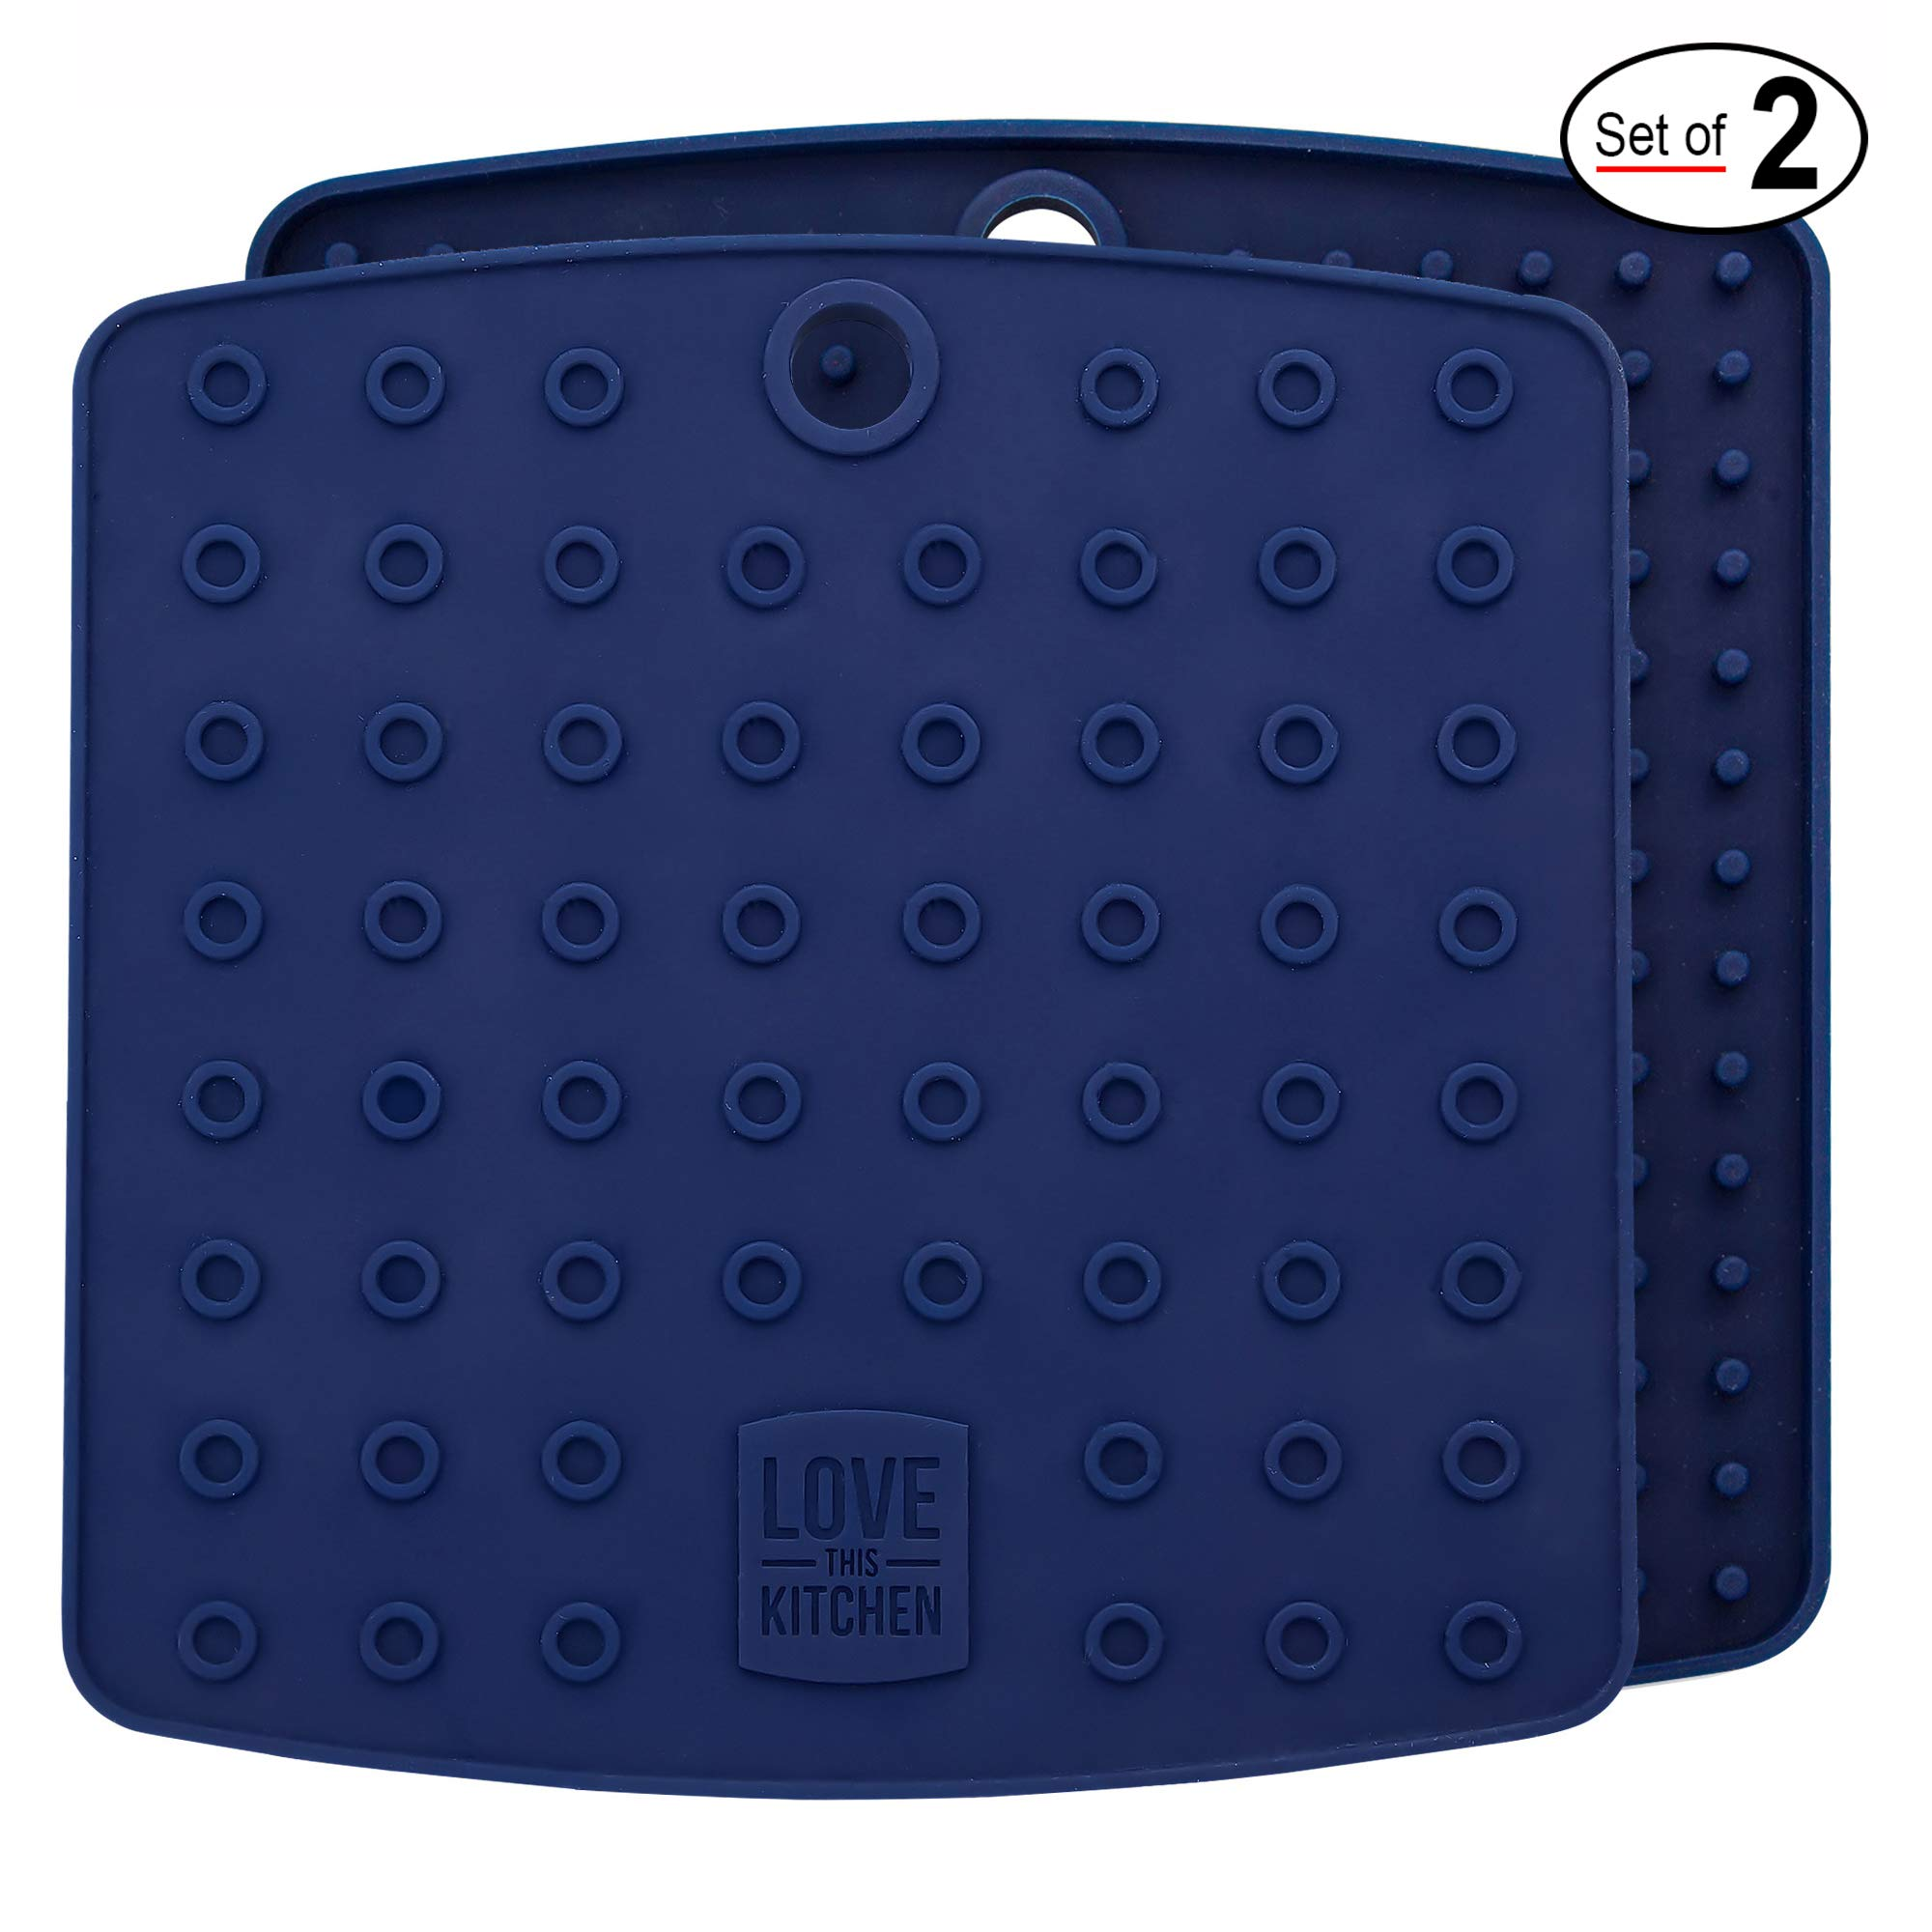 Premium Silicone Pot Holders for Kitchen - Easy to Clean Trivets for Hot Pots and Pans - This Kitchen Tool Works Well as Silicone Trivet, Hot Pads for Oven, Potholders (7x7 in, Blue, 1 Pair)